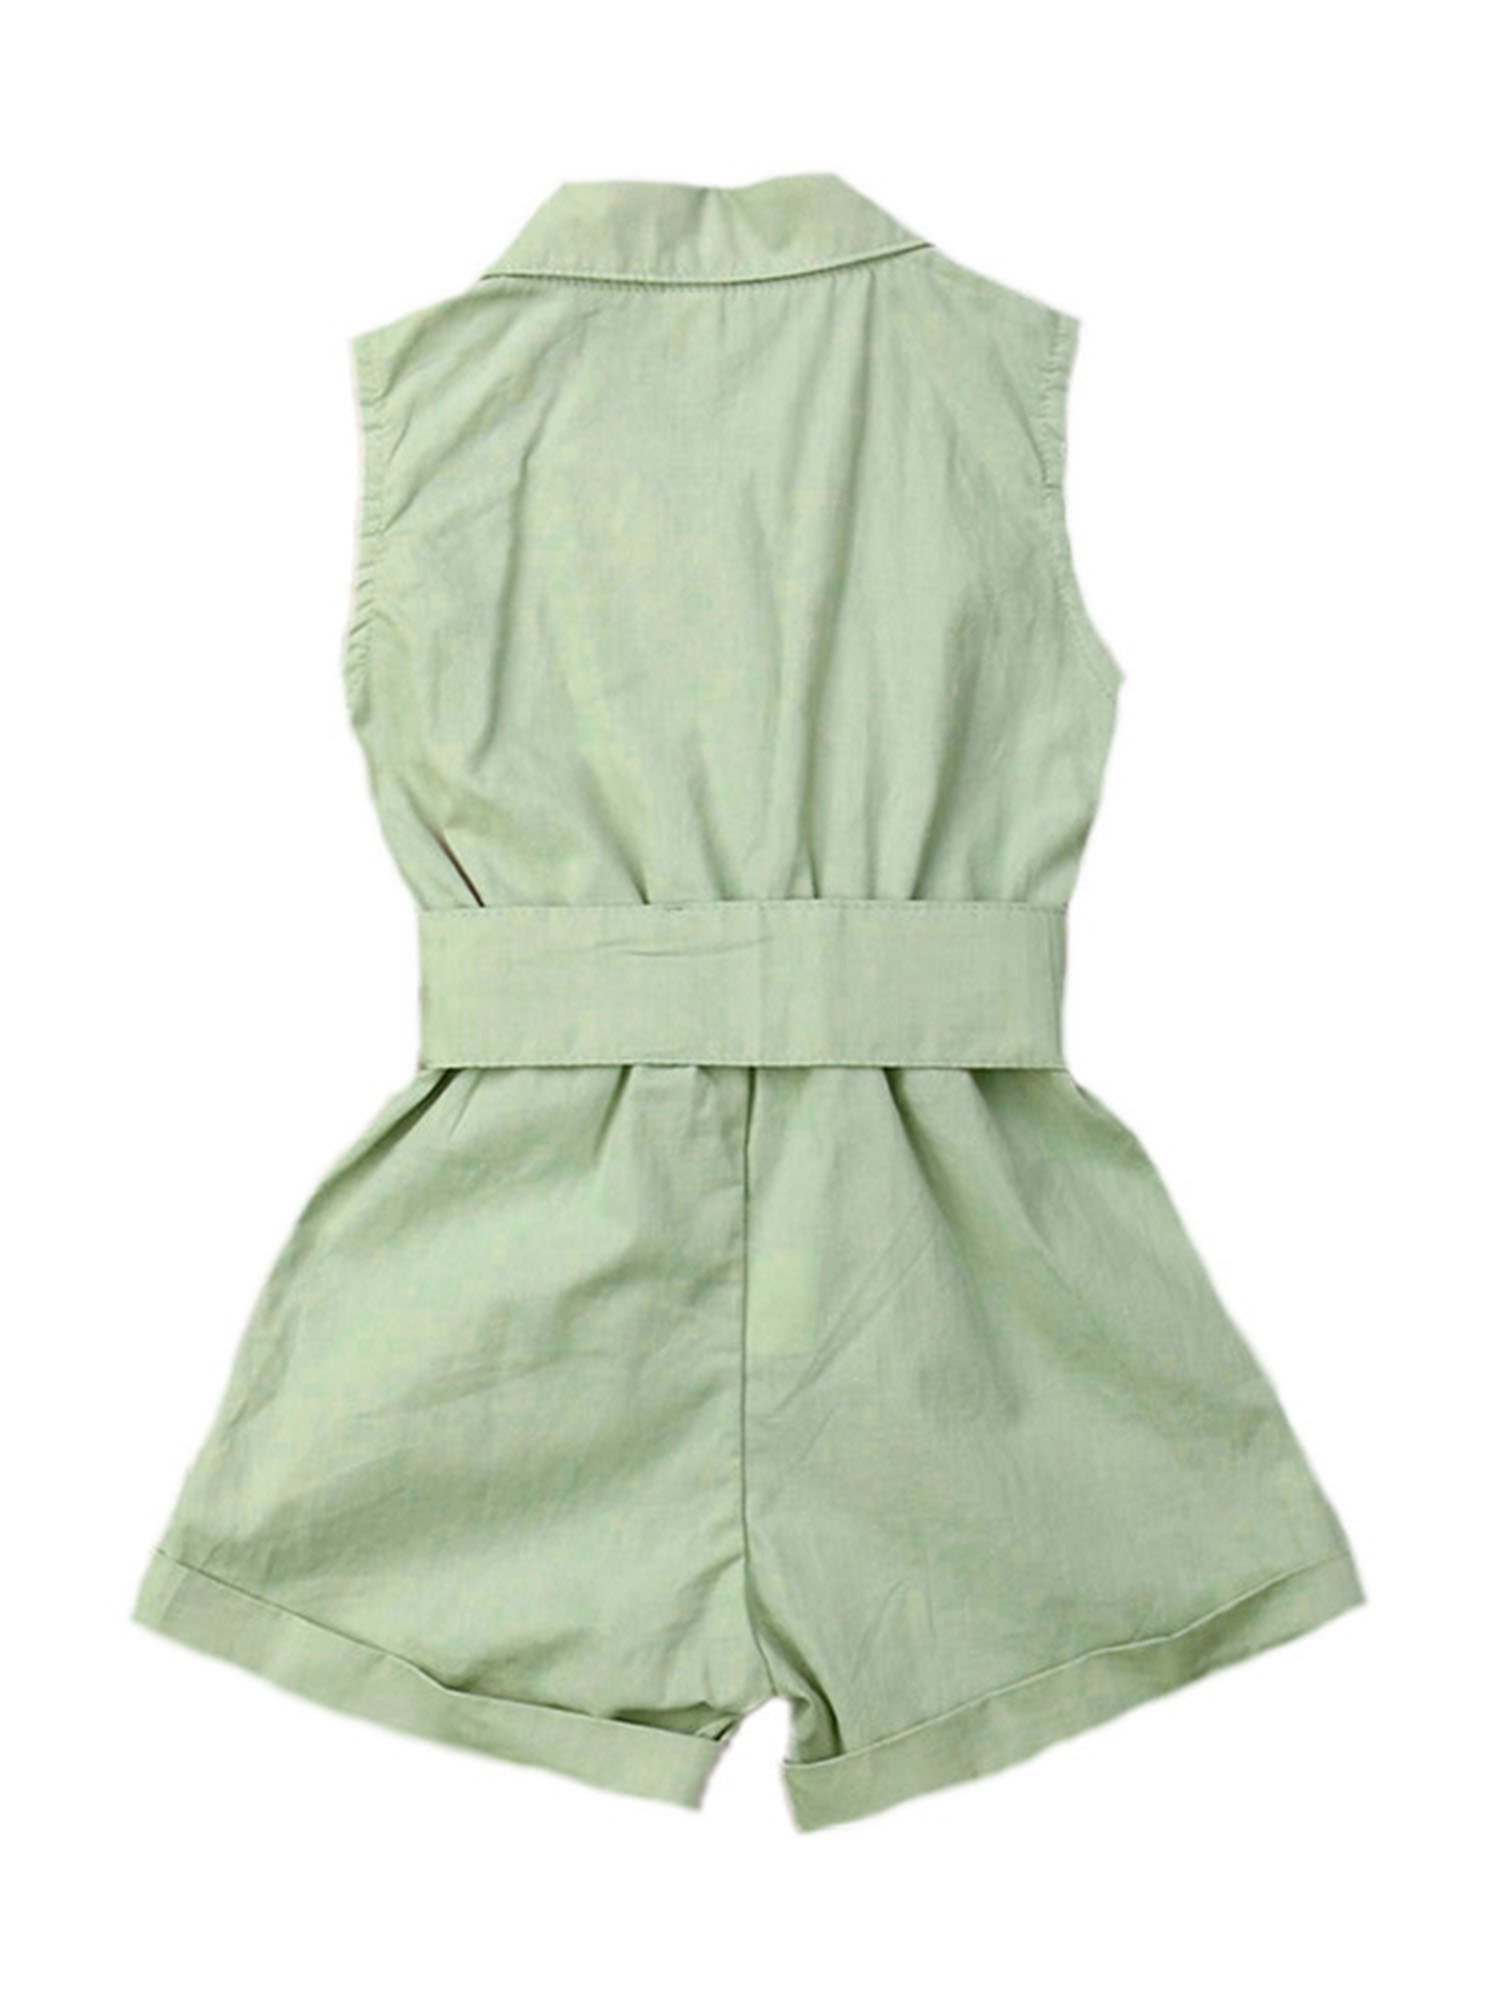 Details about  /Toddler Baby Buttons Sleeveless Jumpsuits Kids Clothing Cotton Solid Pattern New